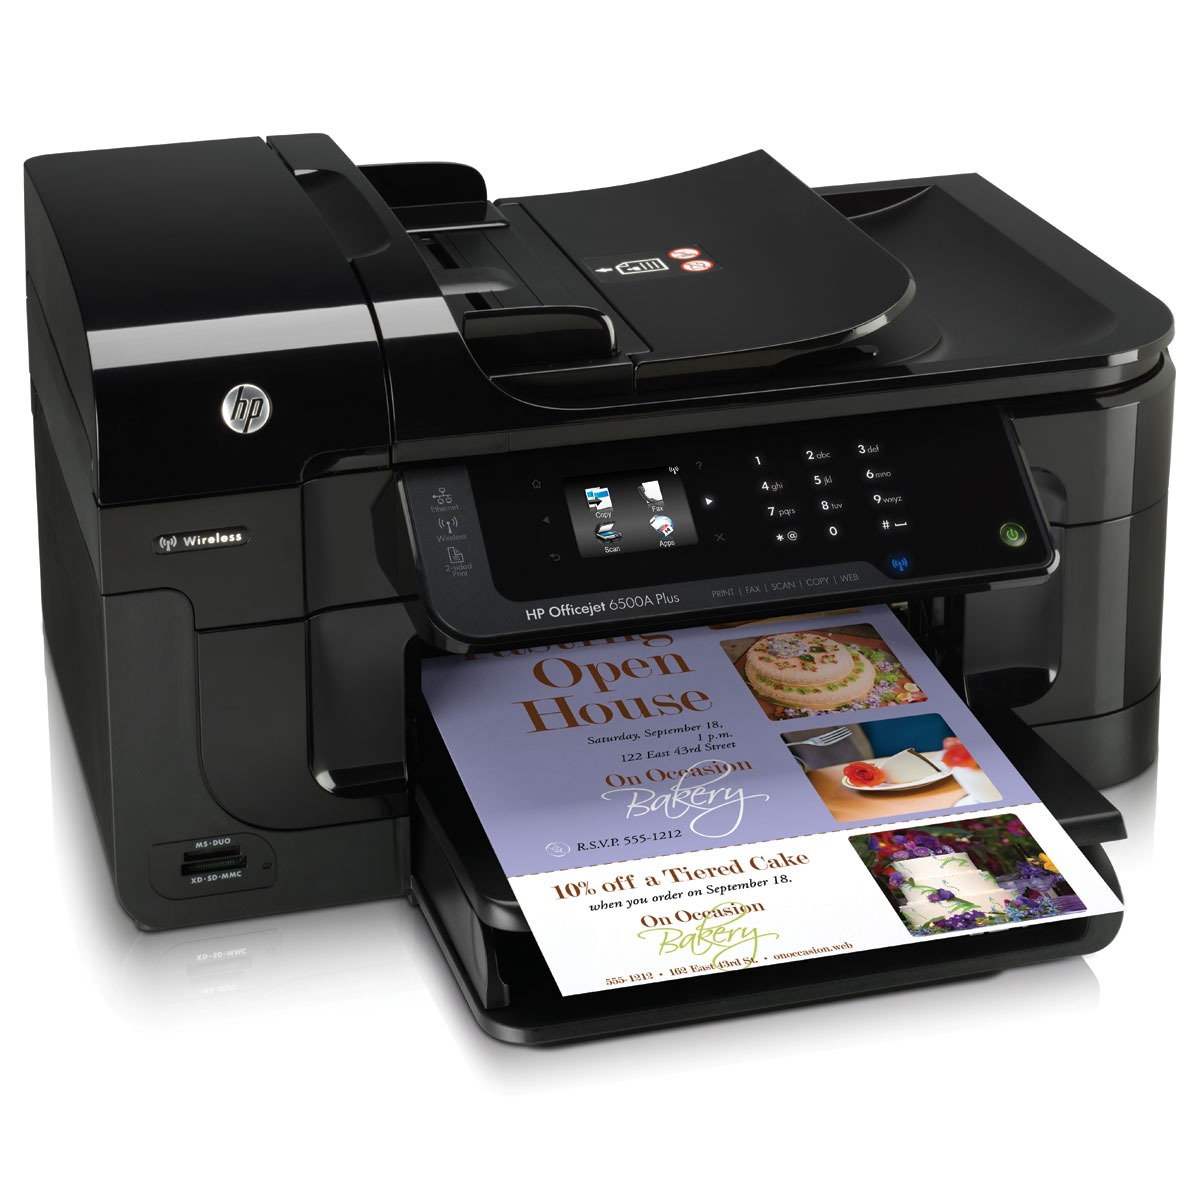 Imprimante multifonction HP Officejet 6500A Plus (E710n) HP Officejet 6500A Plus (E710n) - Imprimante Multifonction jet d'encre couleur 4-en-1 (USB 2.0 / Ethernet / Wi-Fi b/g/n)